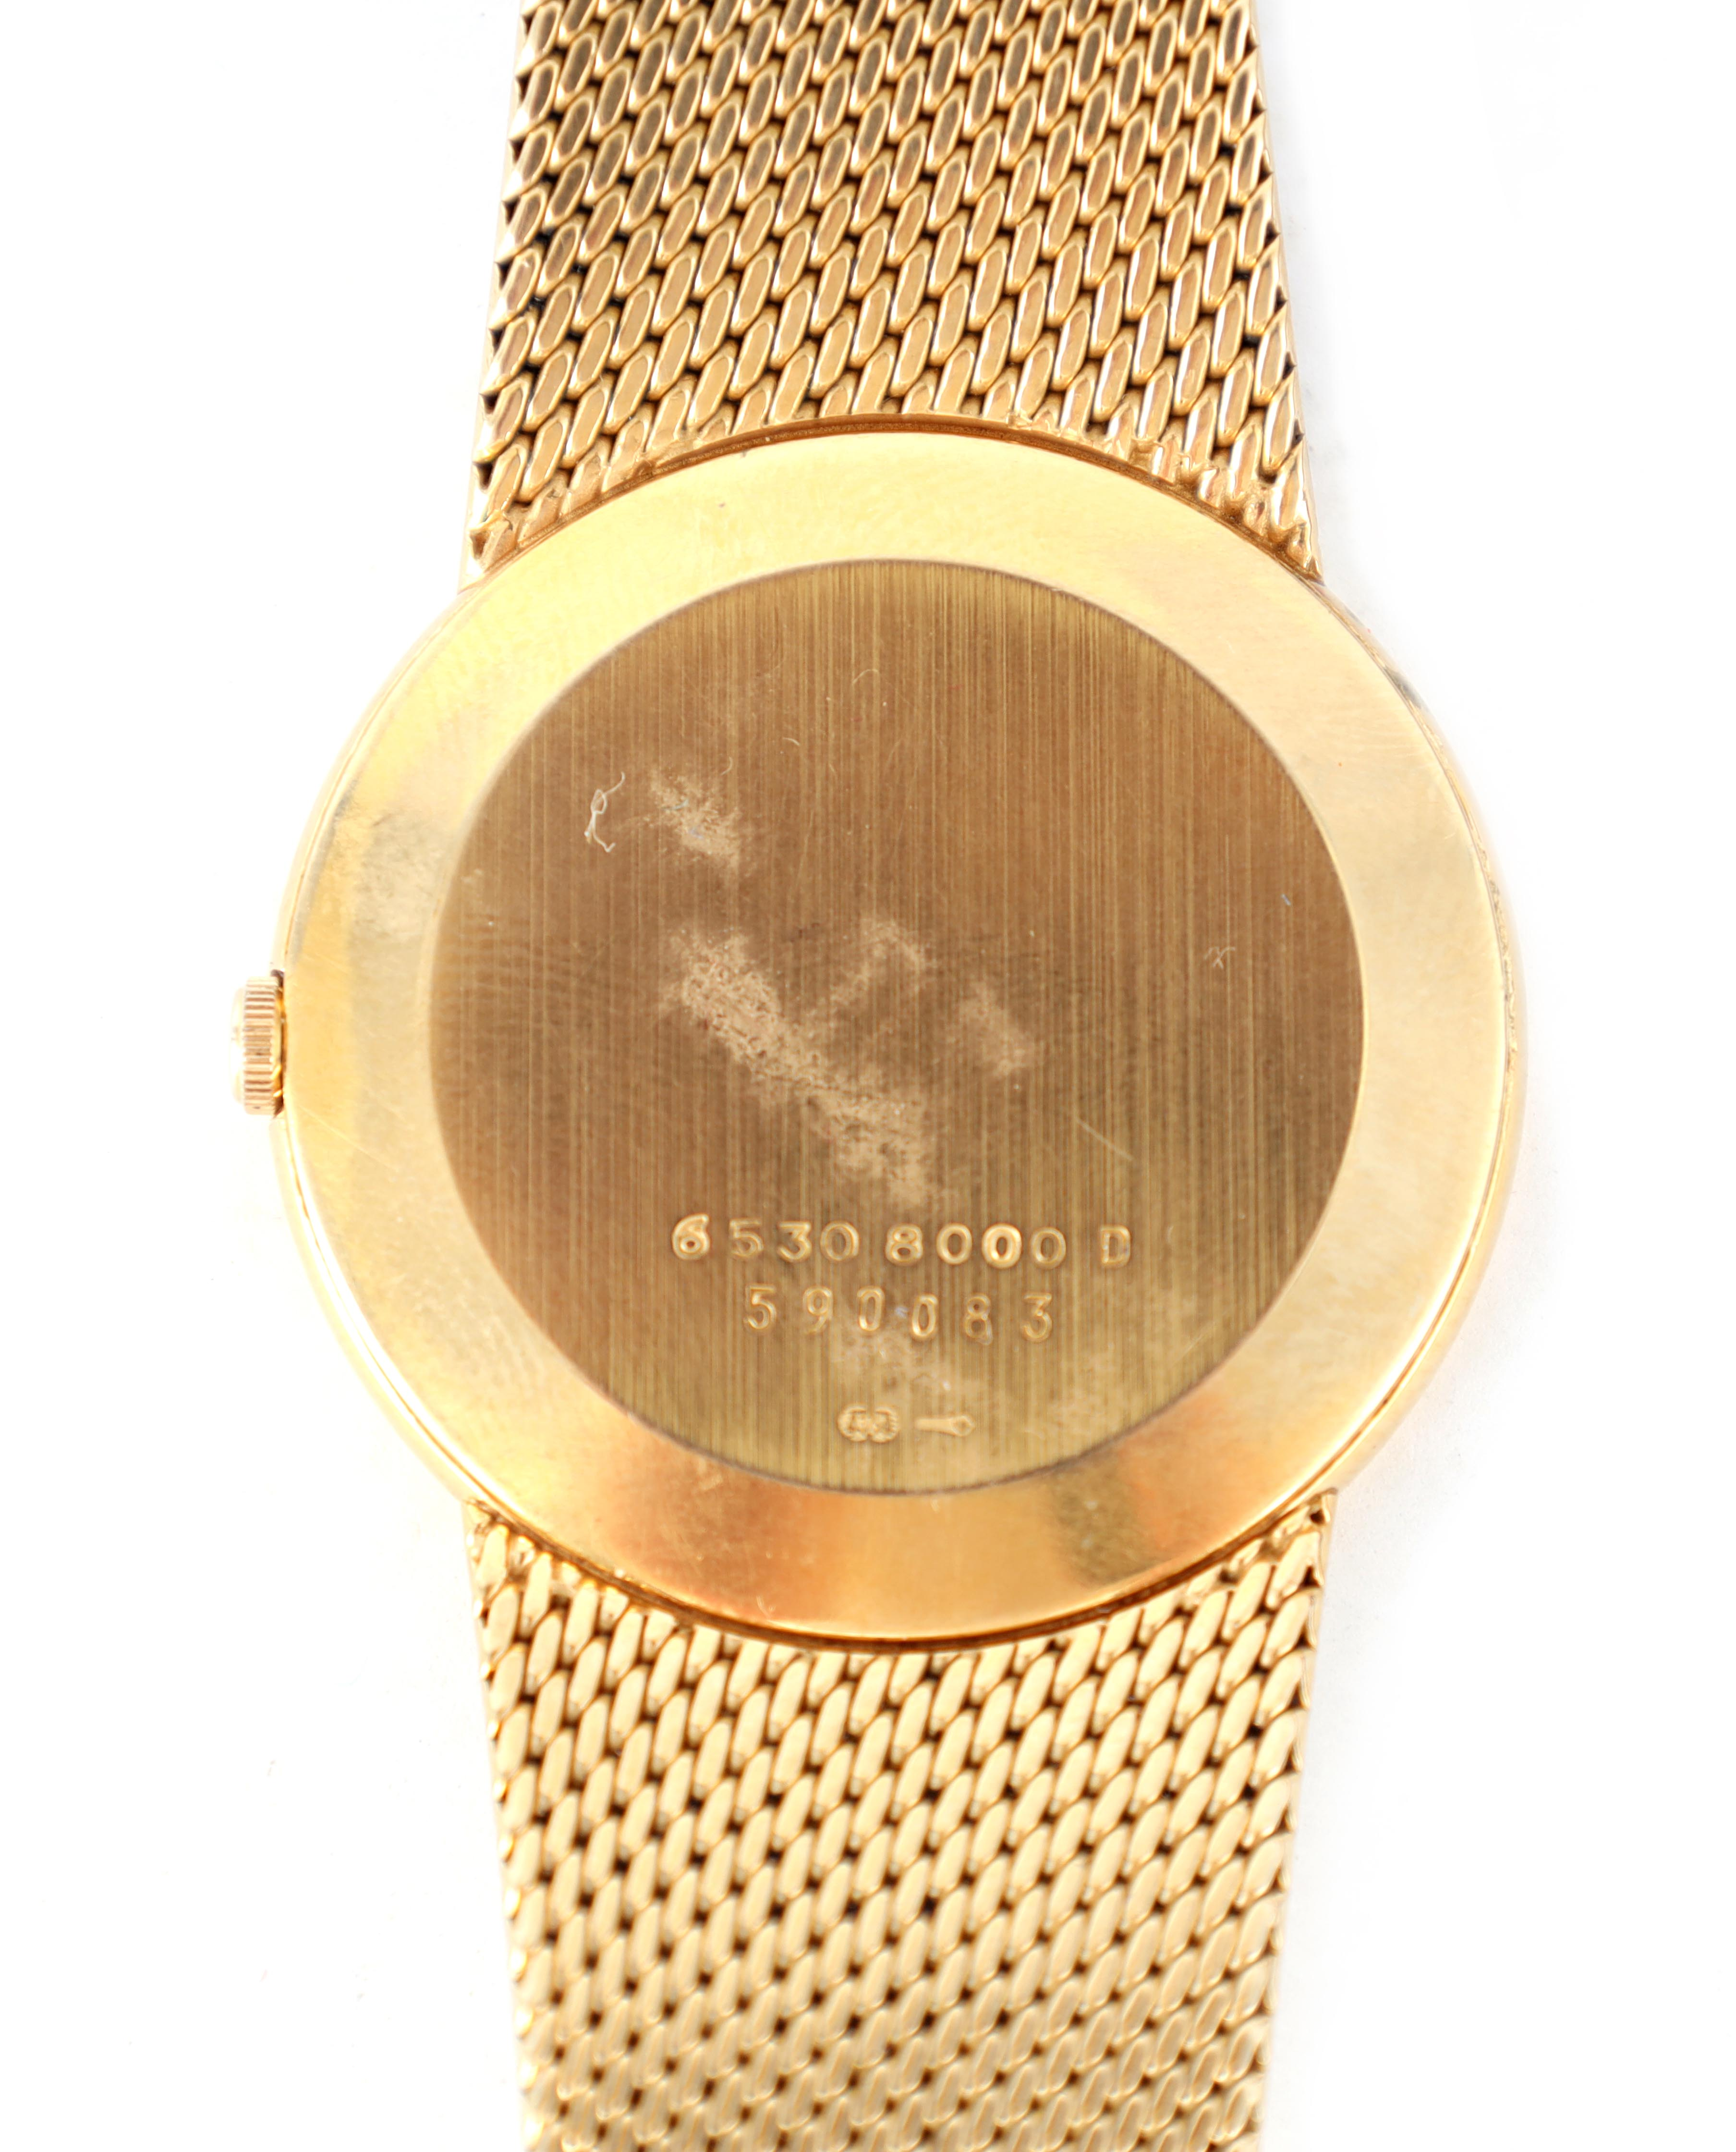 A GENTLEMAN'S 9CT GOLD SEIKO WRISTWATCH on original 9ct gold bracelet The white enamel dial with - Image 5 of 8